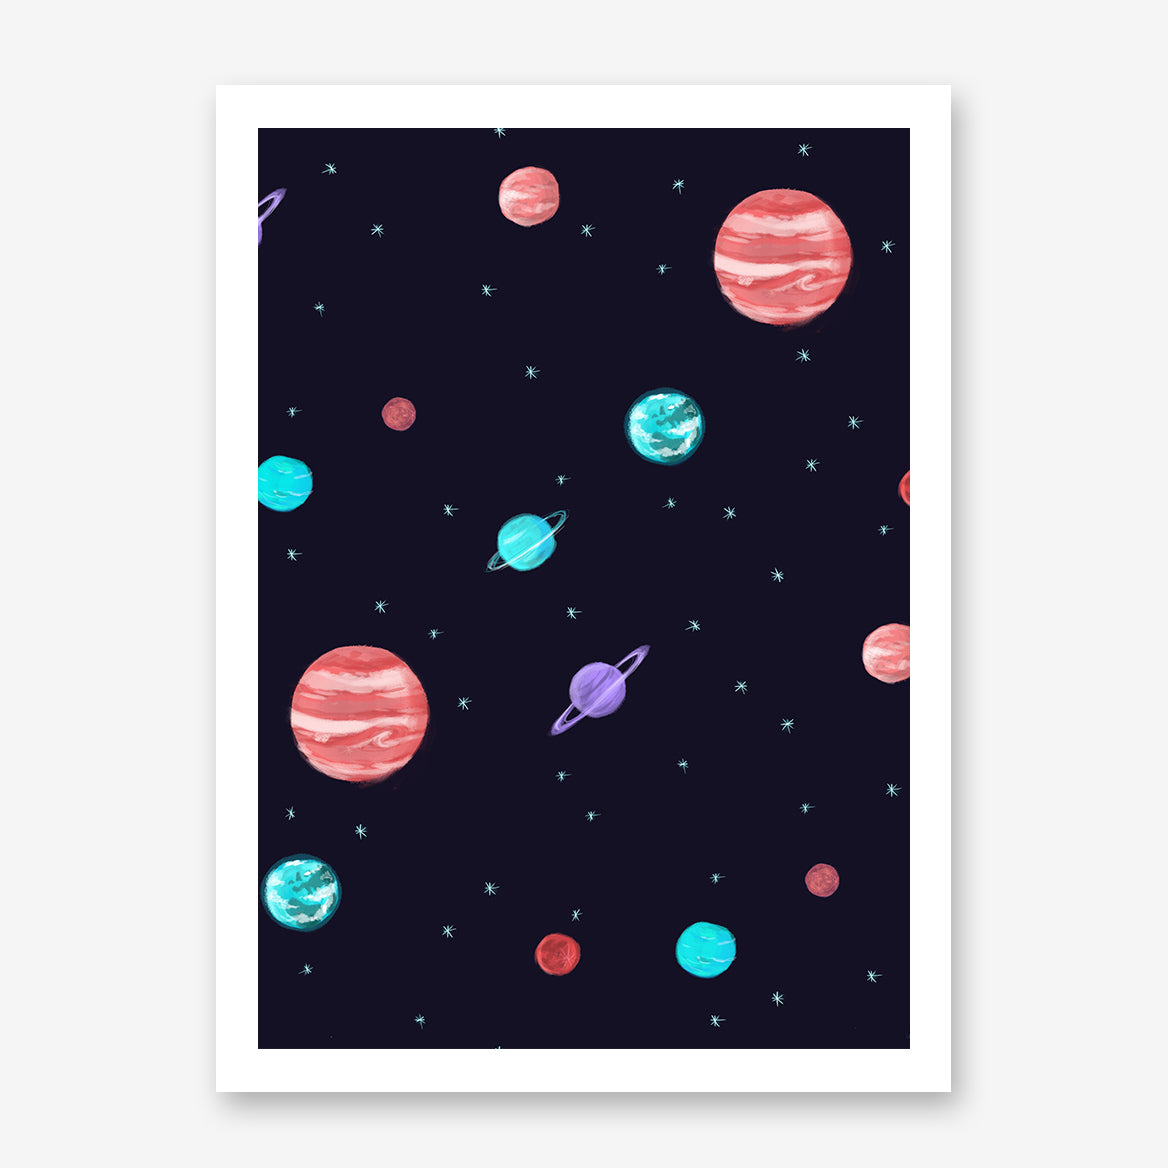 Illustration poster print by Robert Farkas, with night sky, stars and colourful planets.